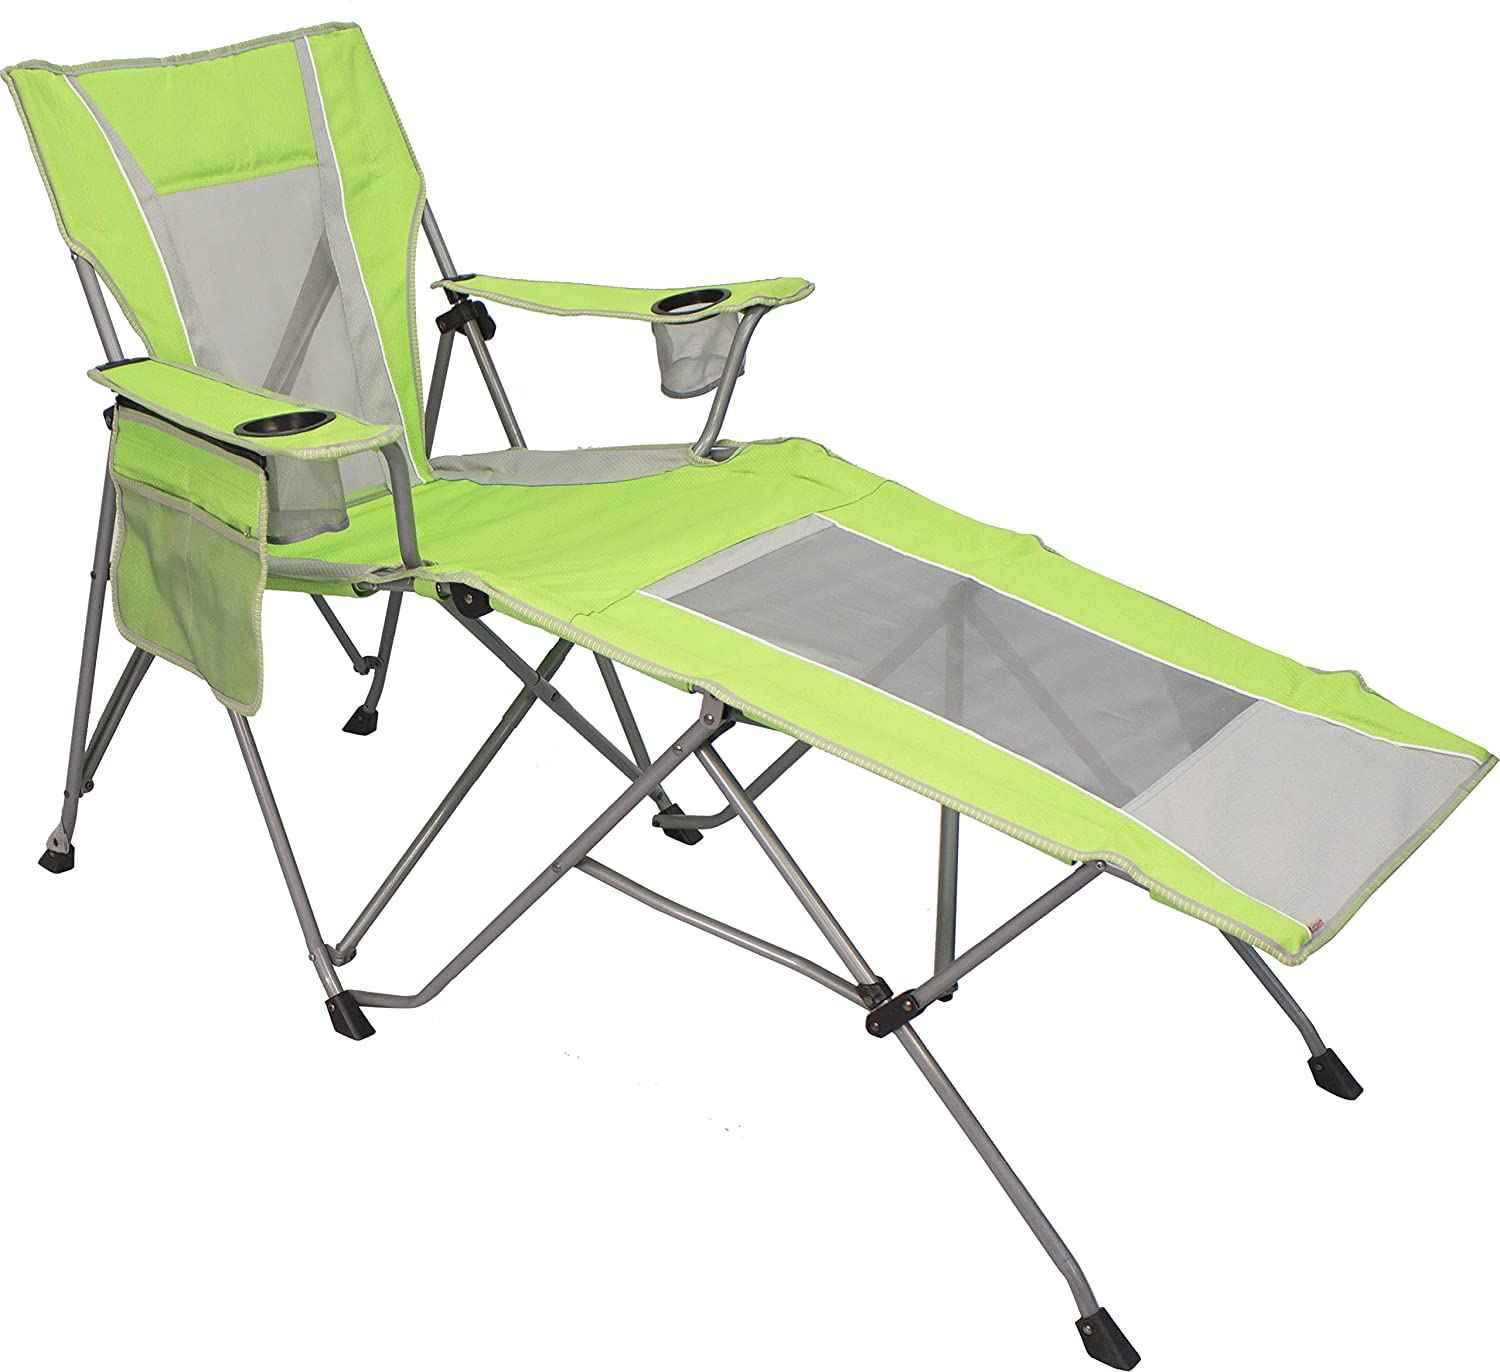 chair safety mauorel - Folding Chairs At Walmart